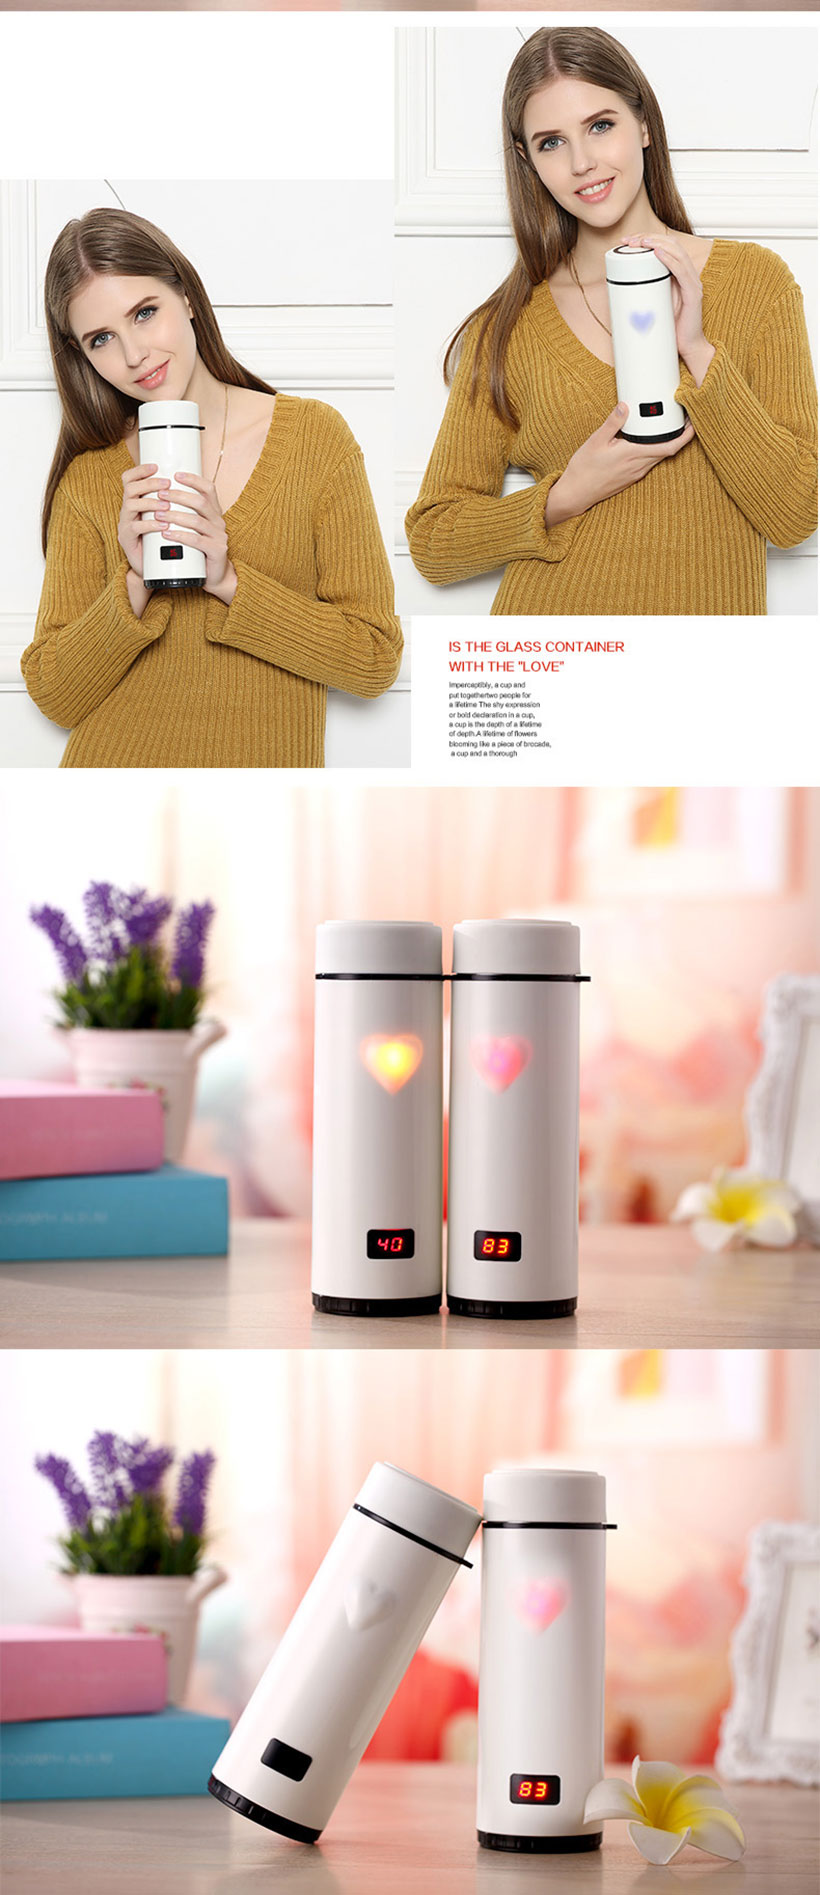 Touch heart cup / hot selling unique premium corporate gift set